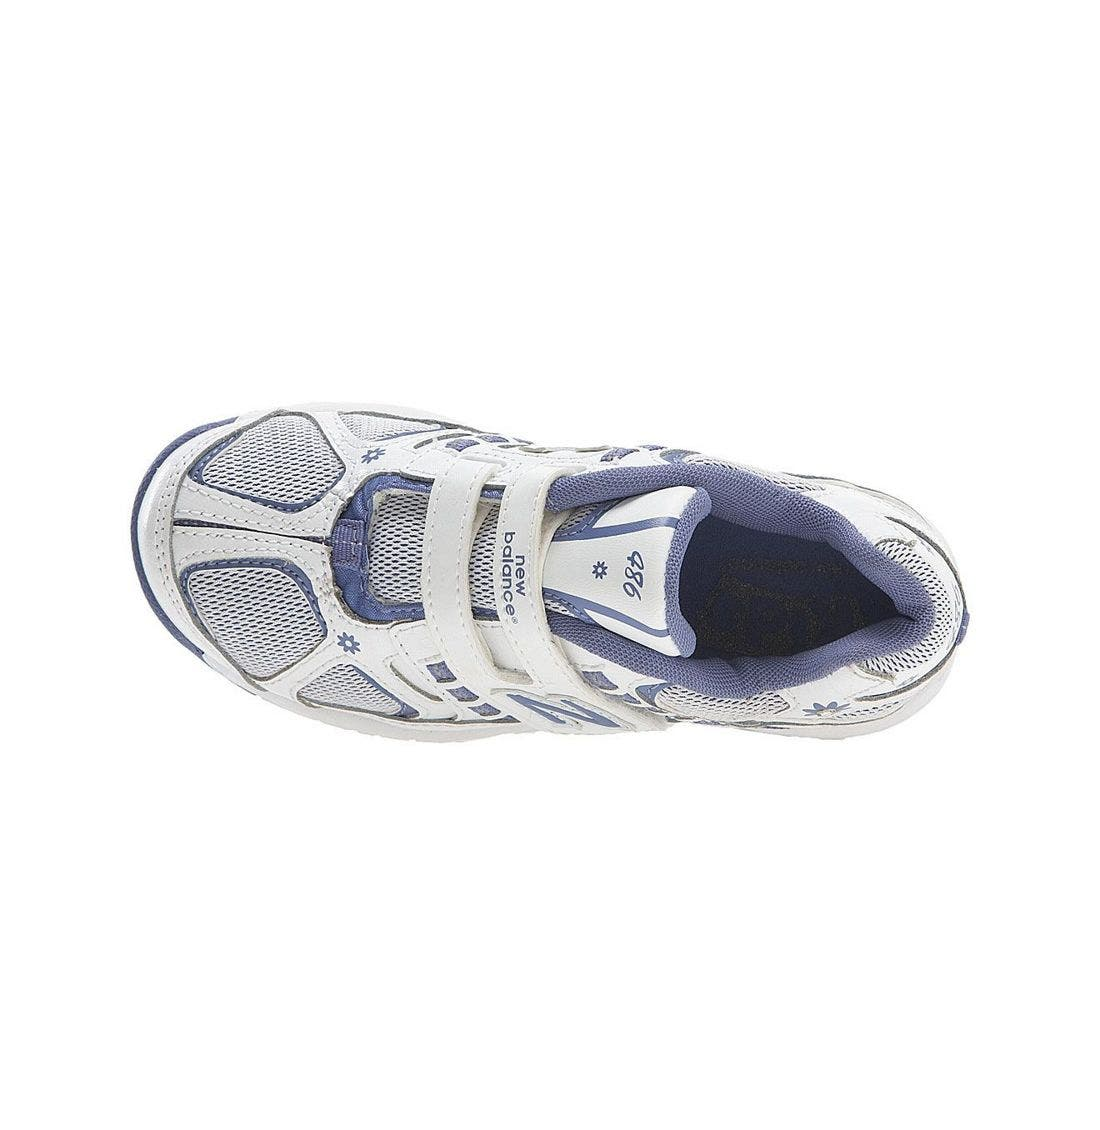 '486' Athletic Shoe,                             Alternate thumbnail 4, color,                             SIB